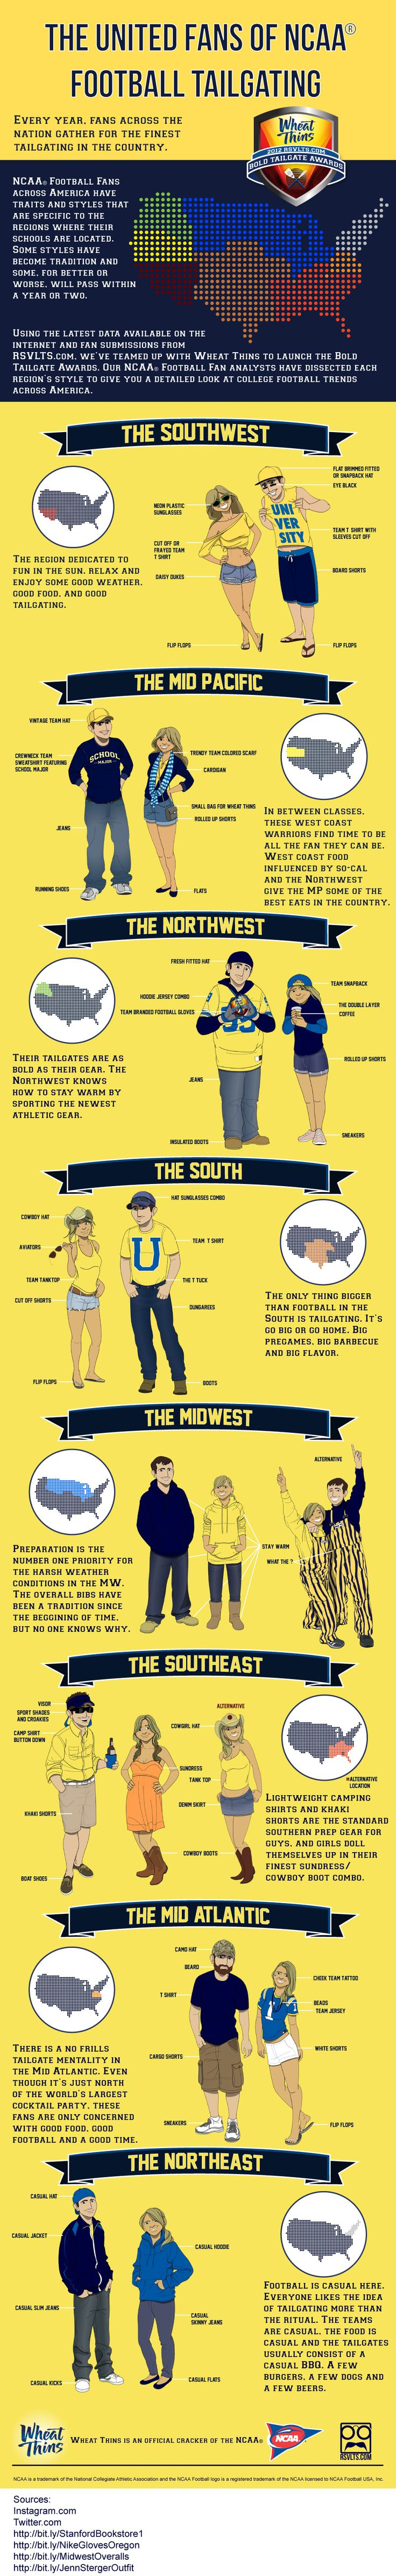 From Daisy Dukes to Overalls: Regional Fashion Trends for College Football Tailgaters [INFOGRAPHIC]